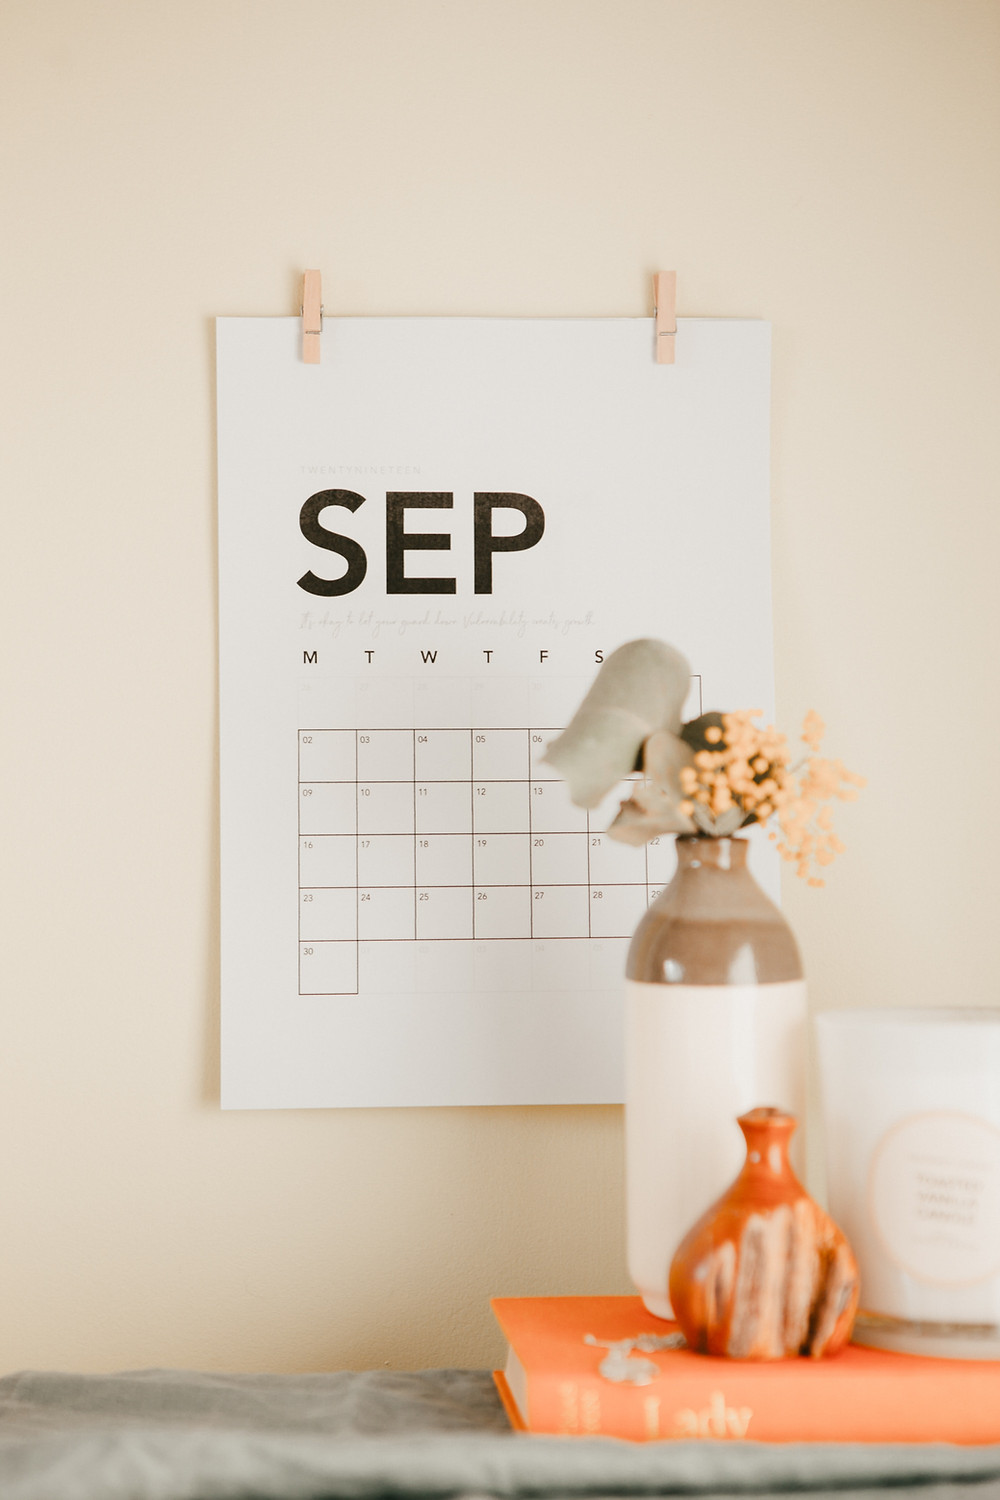 a wall calendar turned to September with a book, flower, and vases in foreground